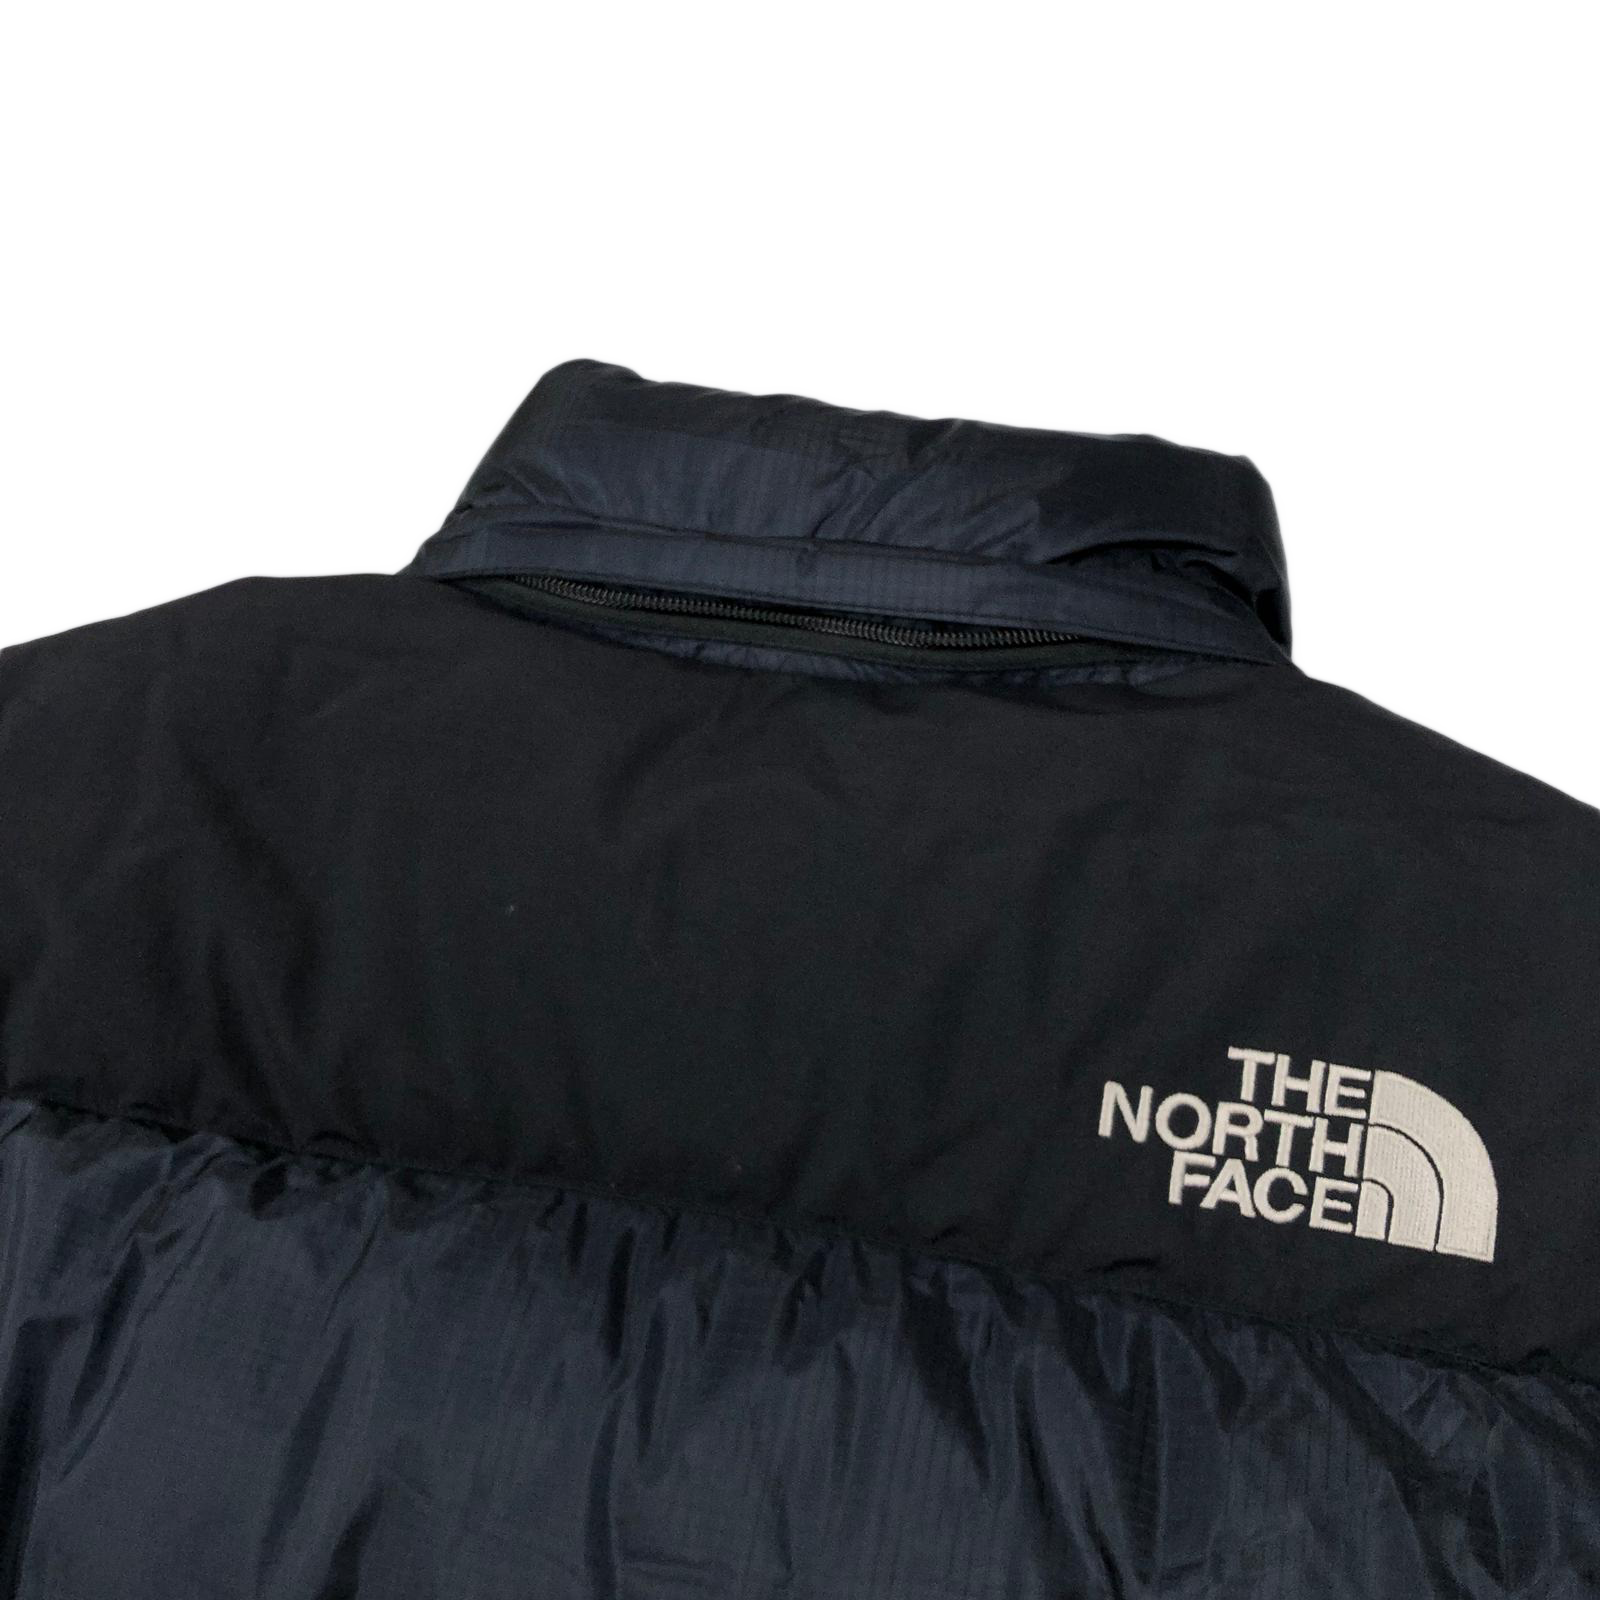 The North Face windstopper puffer